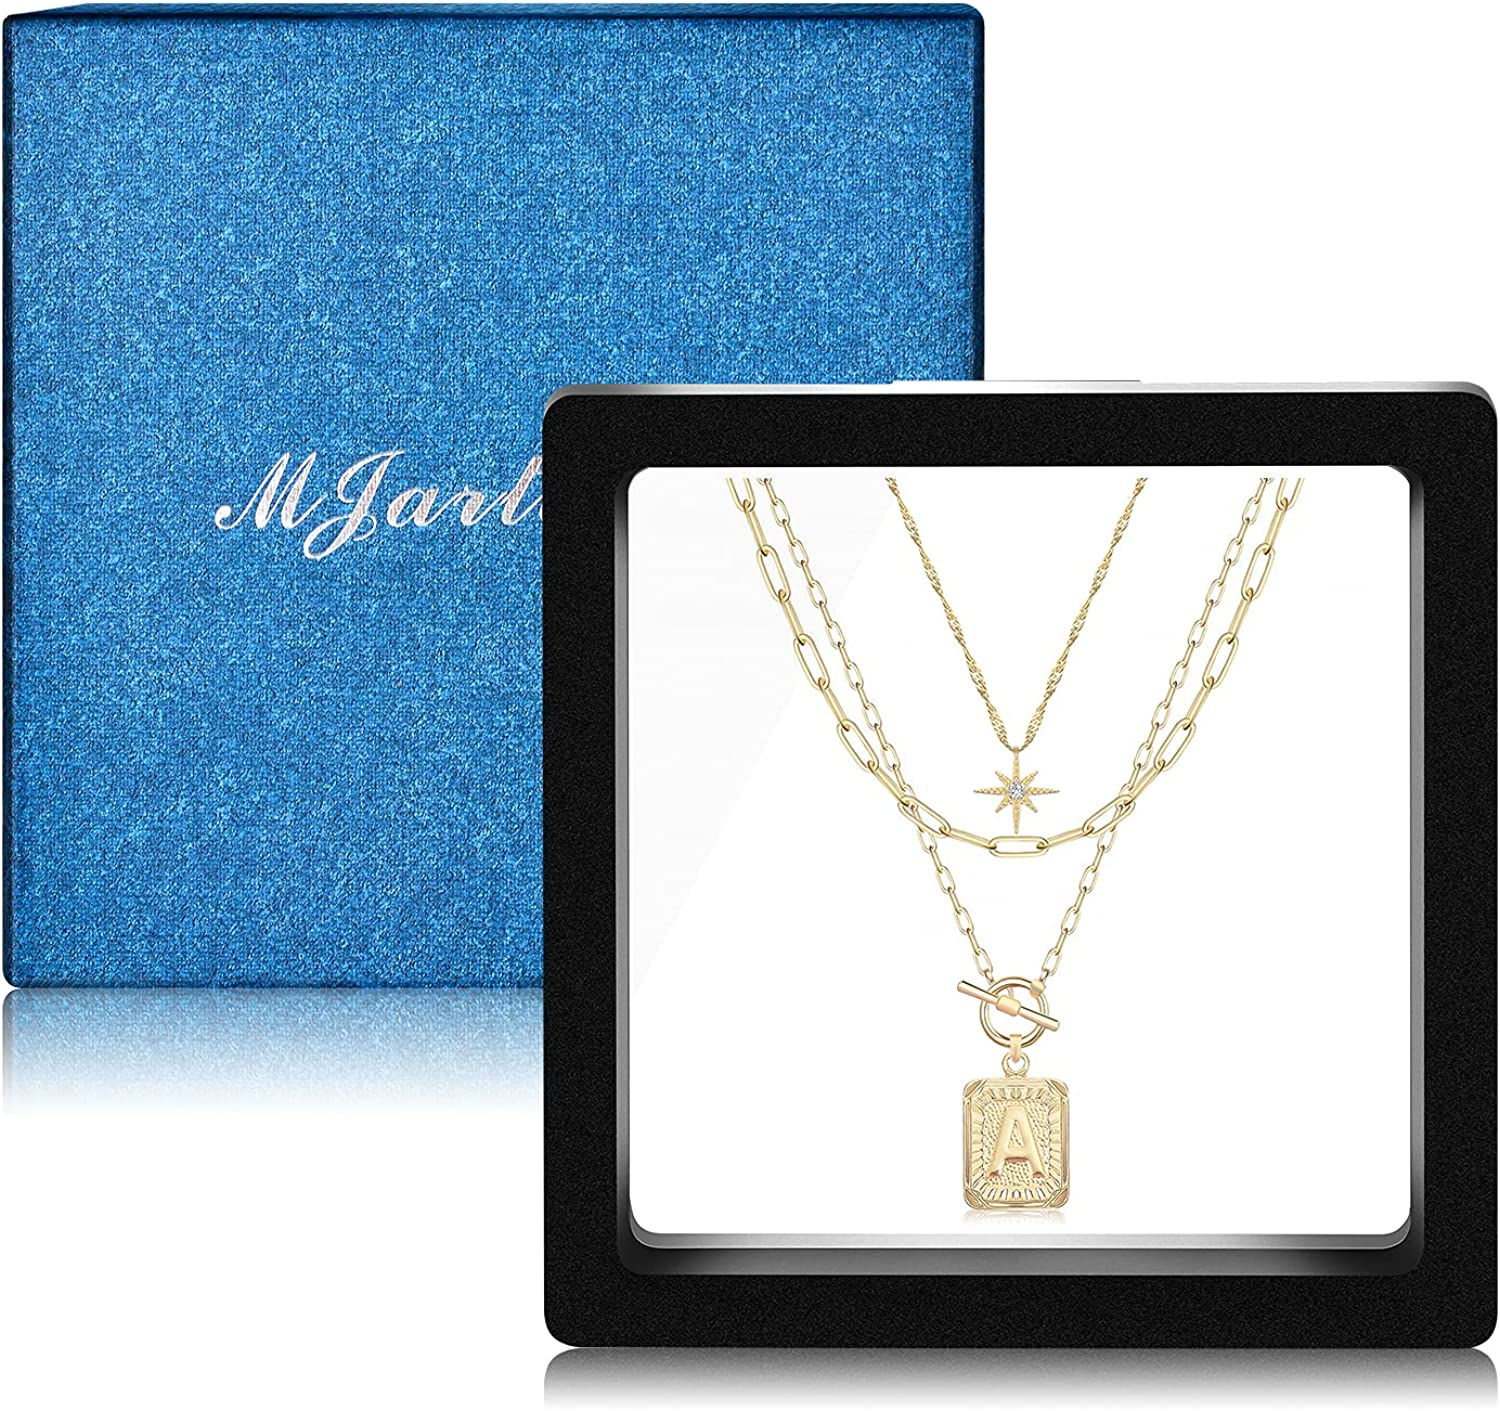 MJartoria Layered Gold Initial Square Letter Pendant Necklaces for Women 24K Gold Plated Dainty Paperclip Chain Toggle Clasp A-Z Letter North Star Layering Choker Necklaces Jewelry Gifts for Girls